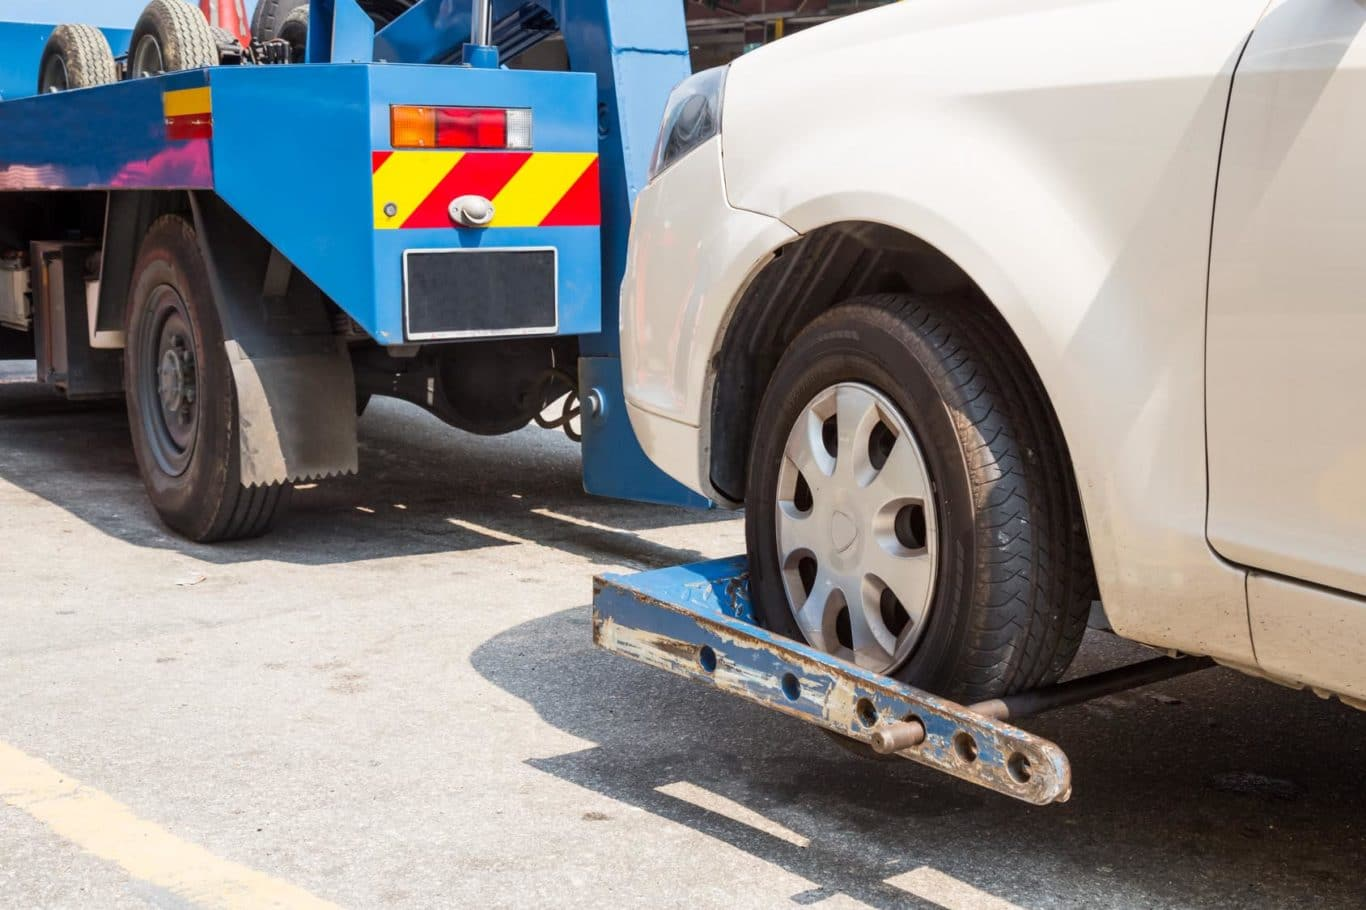 Tallaght expert Breakdown Recovery services